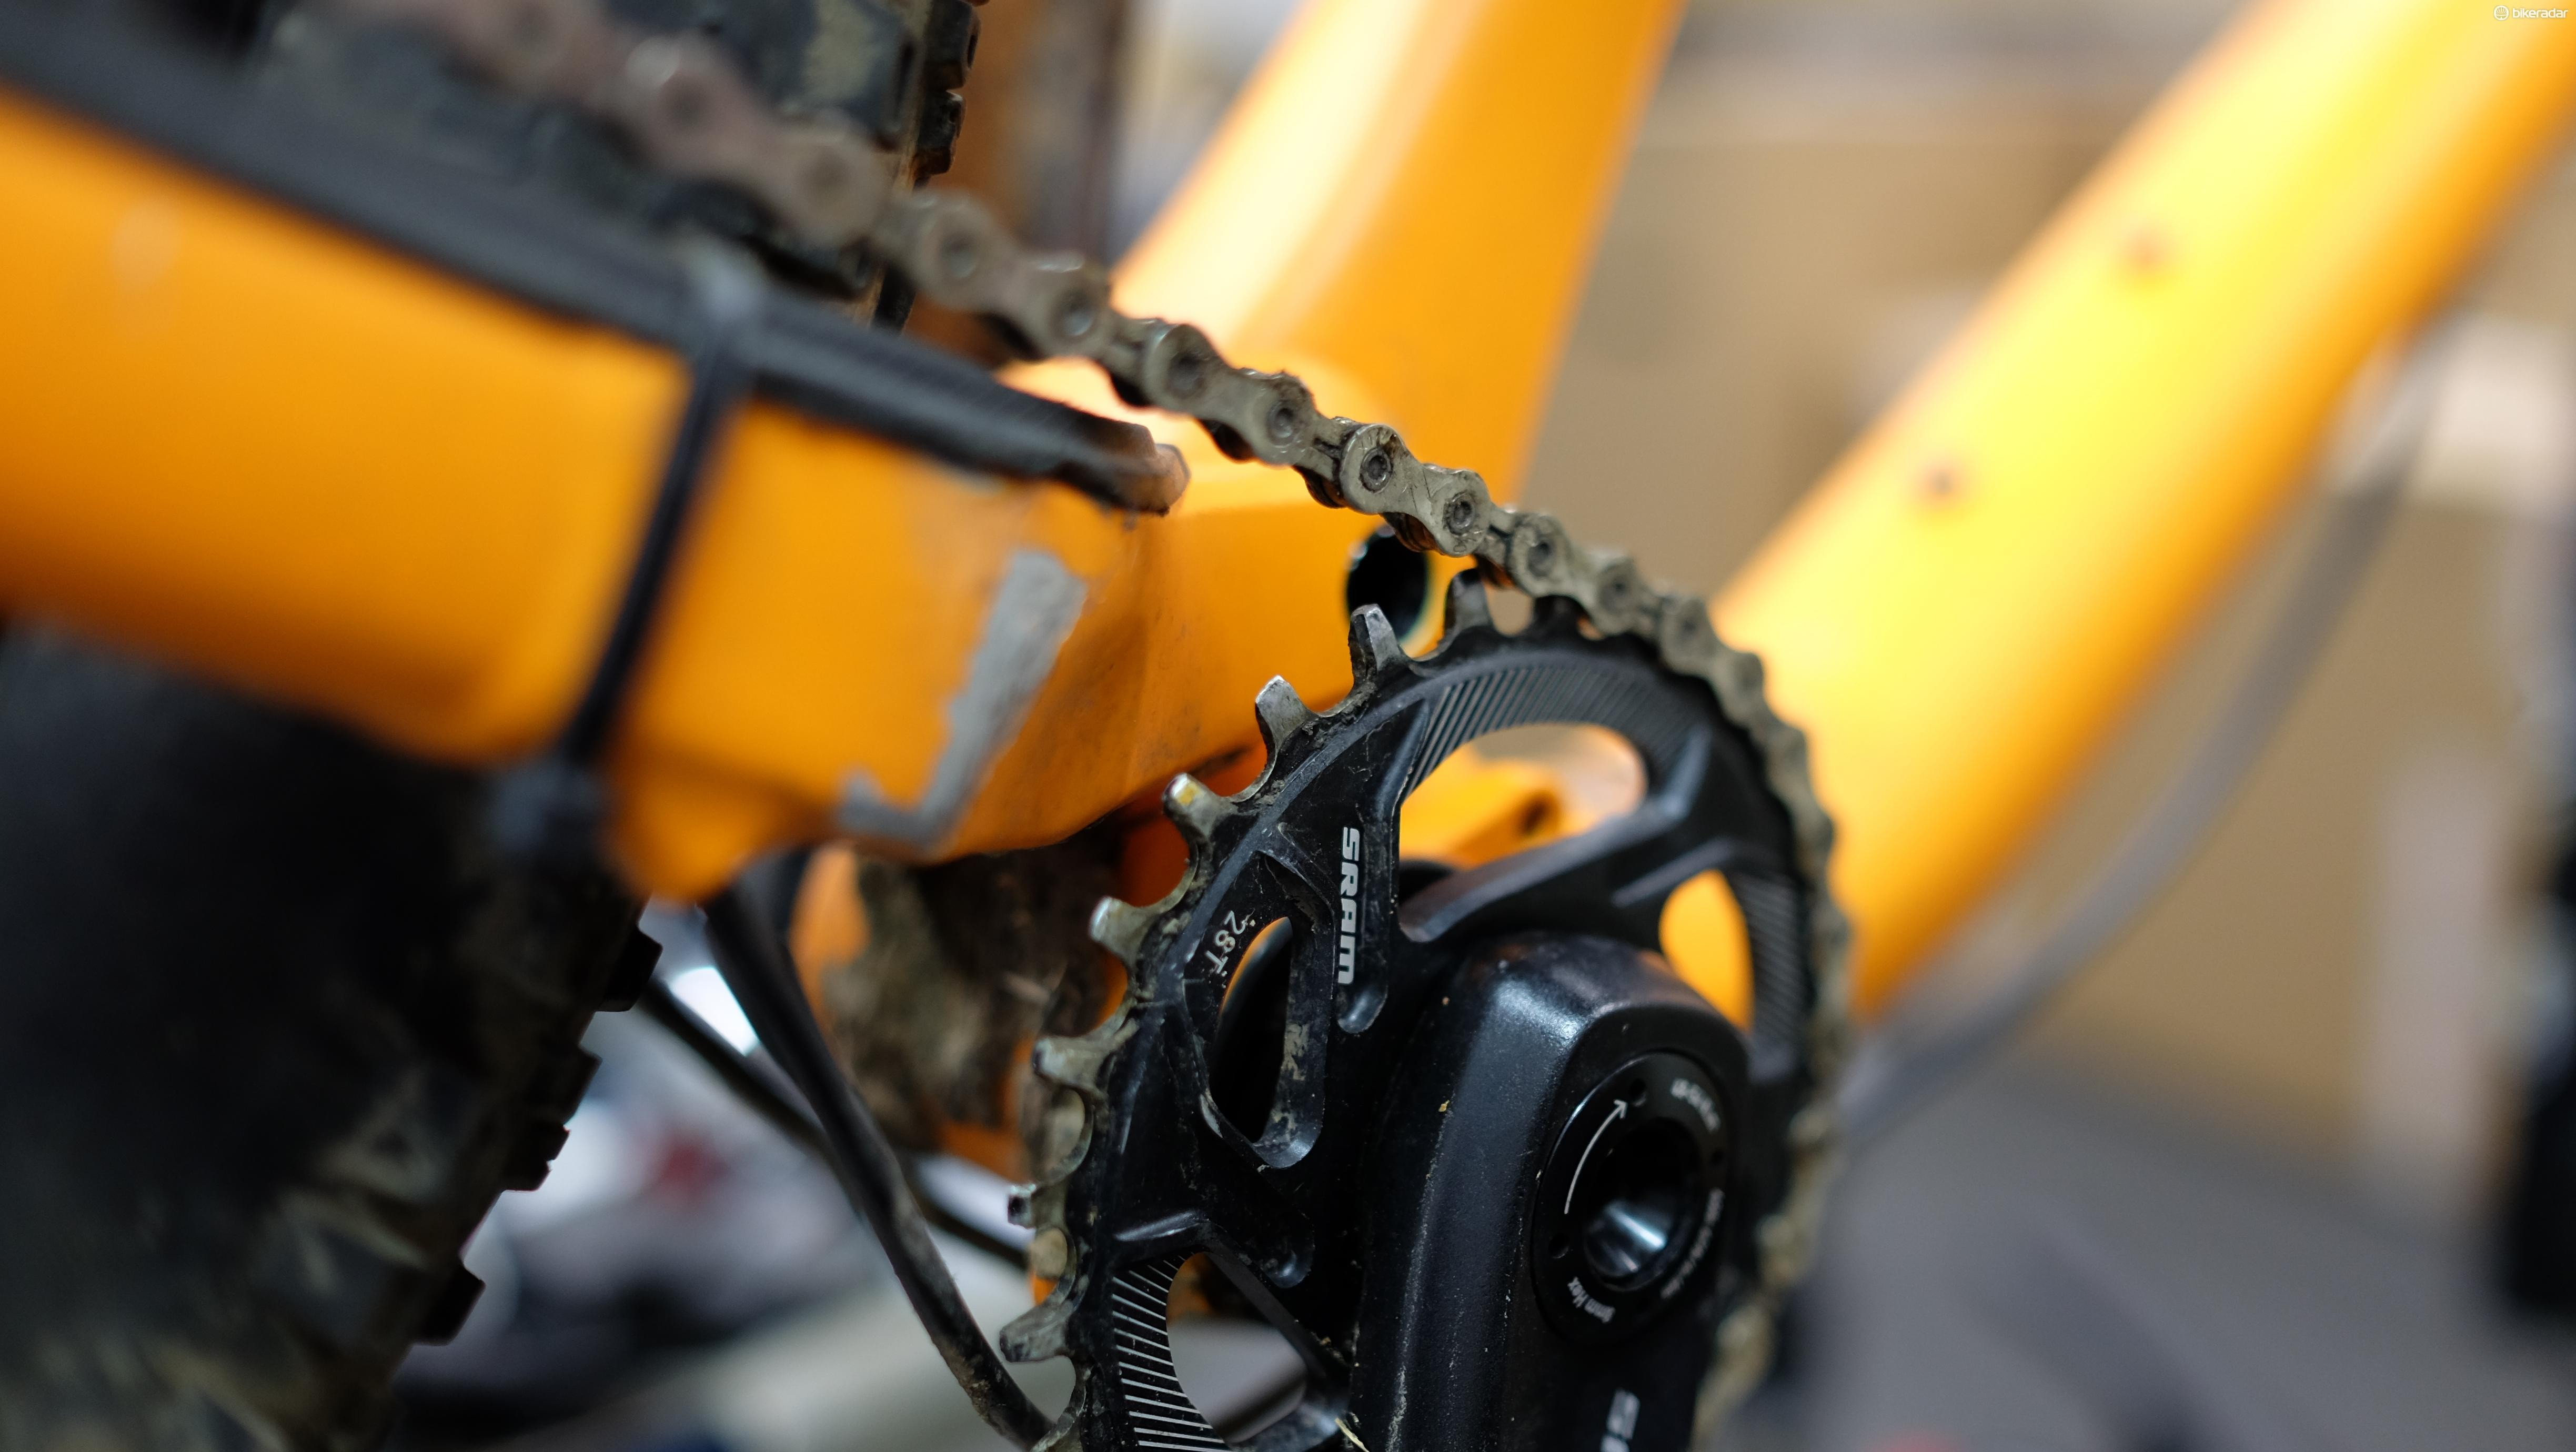 Narrow-wide chainrings have drastically improved chain retention for 1x configurations